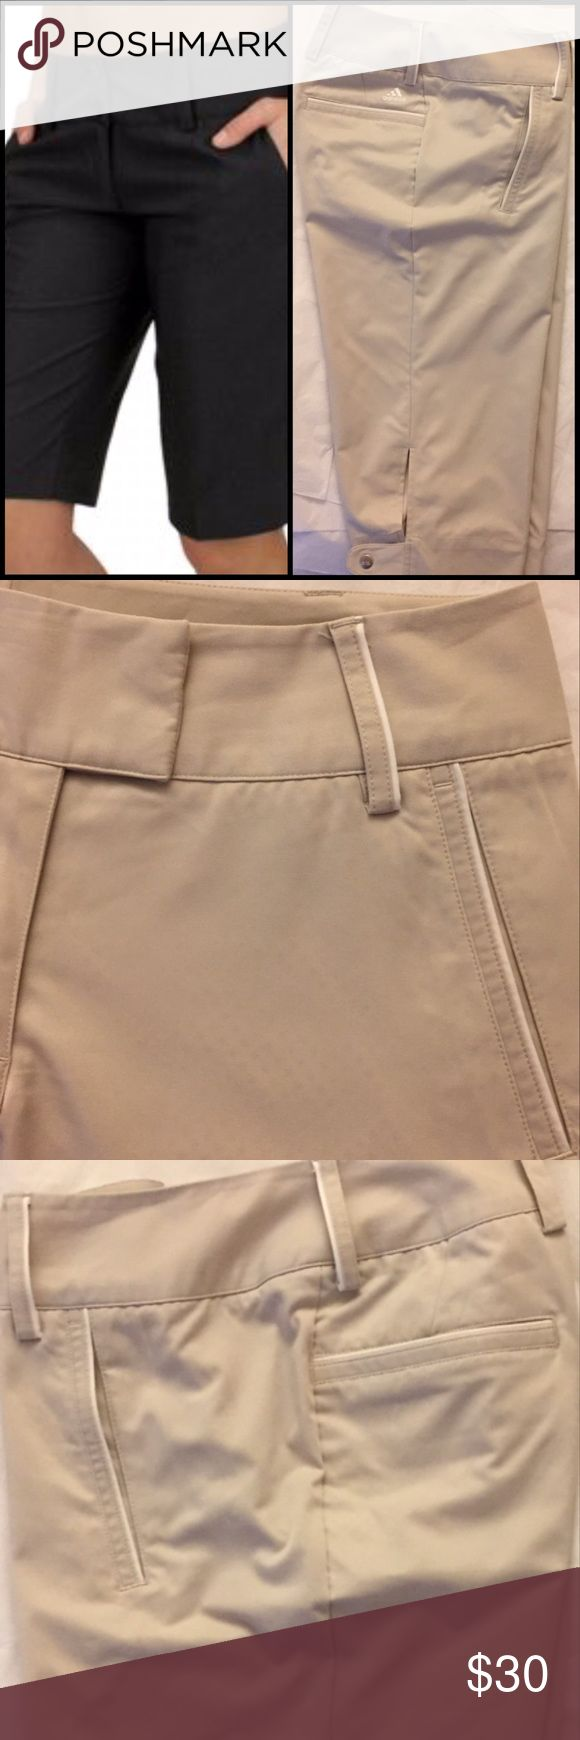 """Adidas Climalite Tan Golf Pants-Reduced Size 4, goes all pushers. In excellent condition. Waist 32, inseam 17"""". Golf knickers! Adidas Pants Capris #GolfKnickers"""